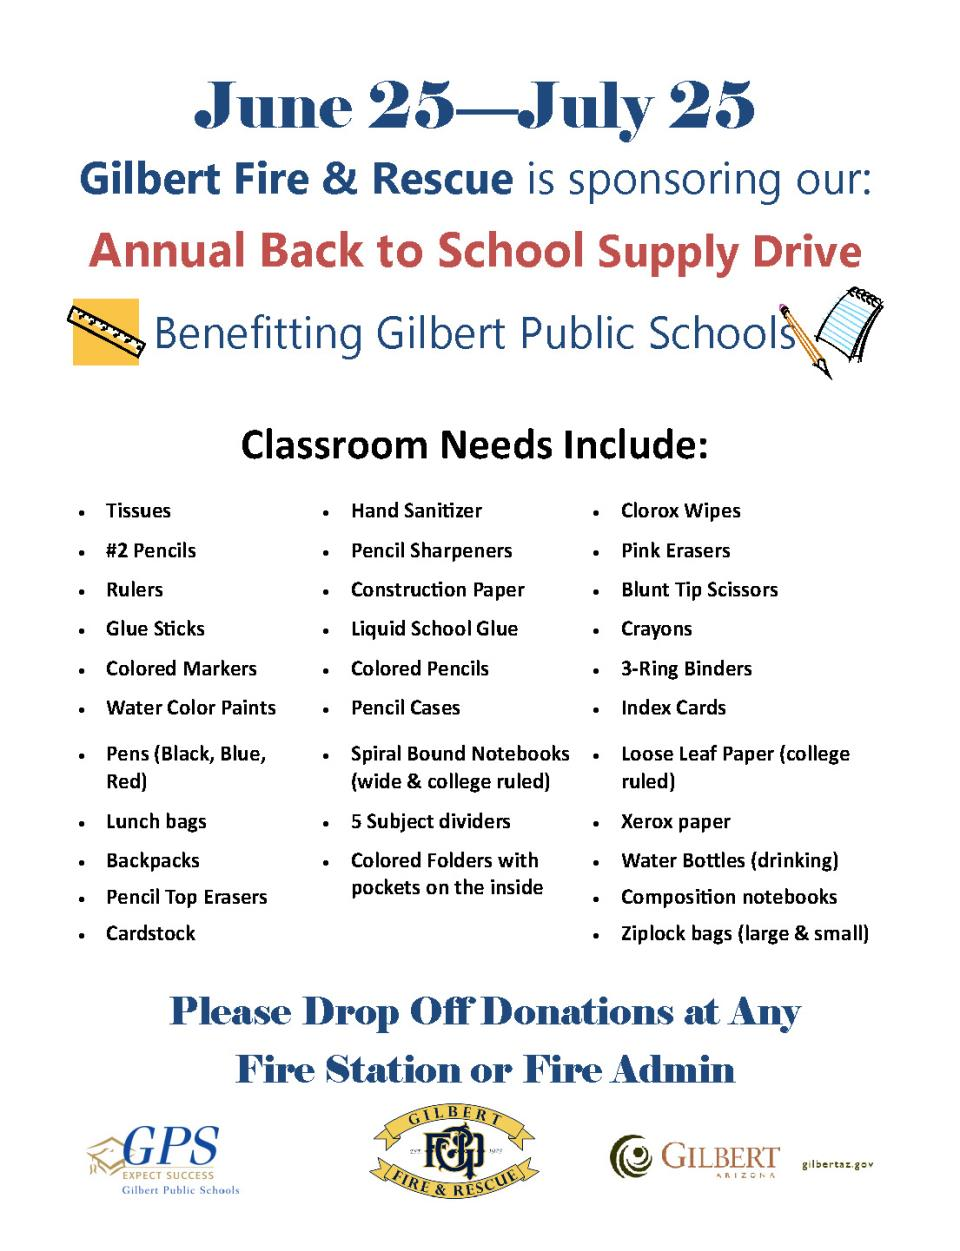 Gilbert Fire and Rescue's Annual Back to School Supply Drive